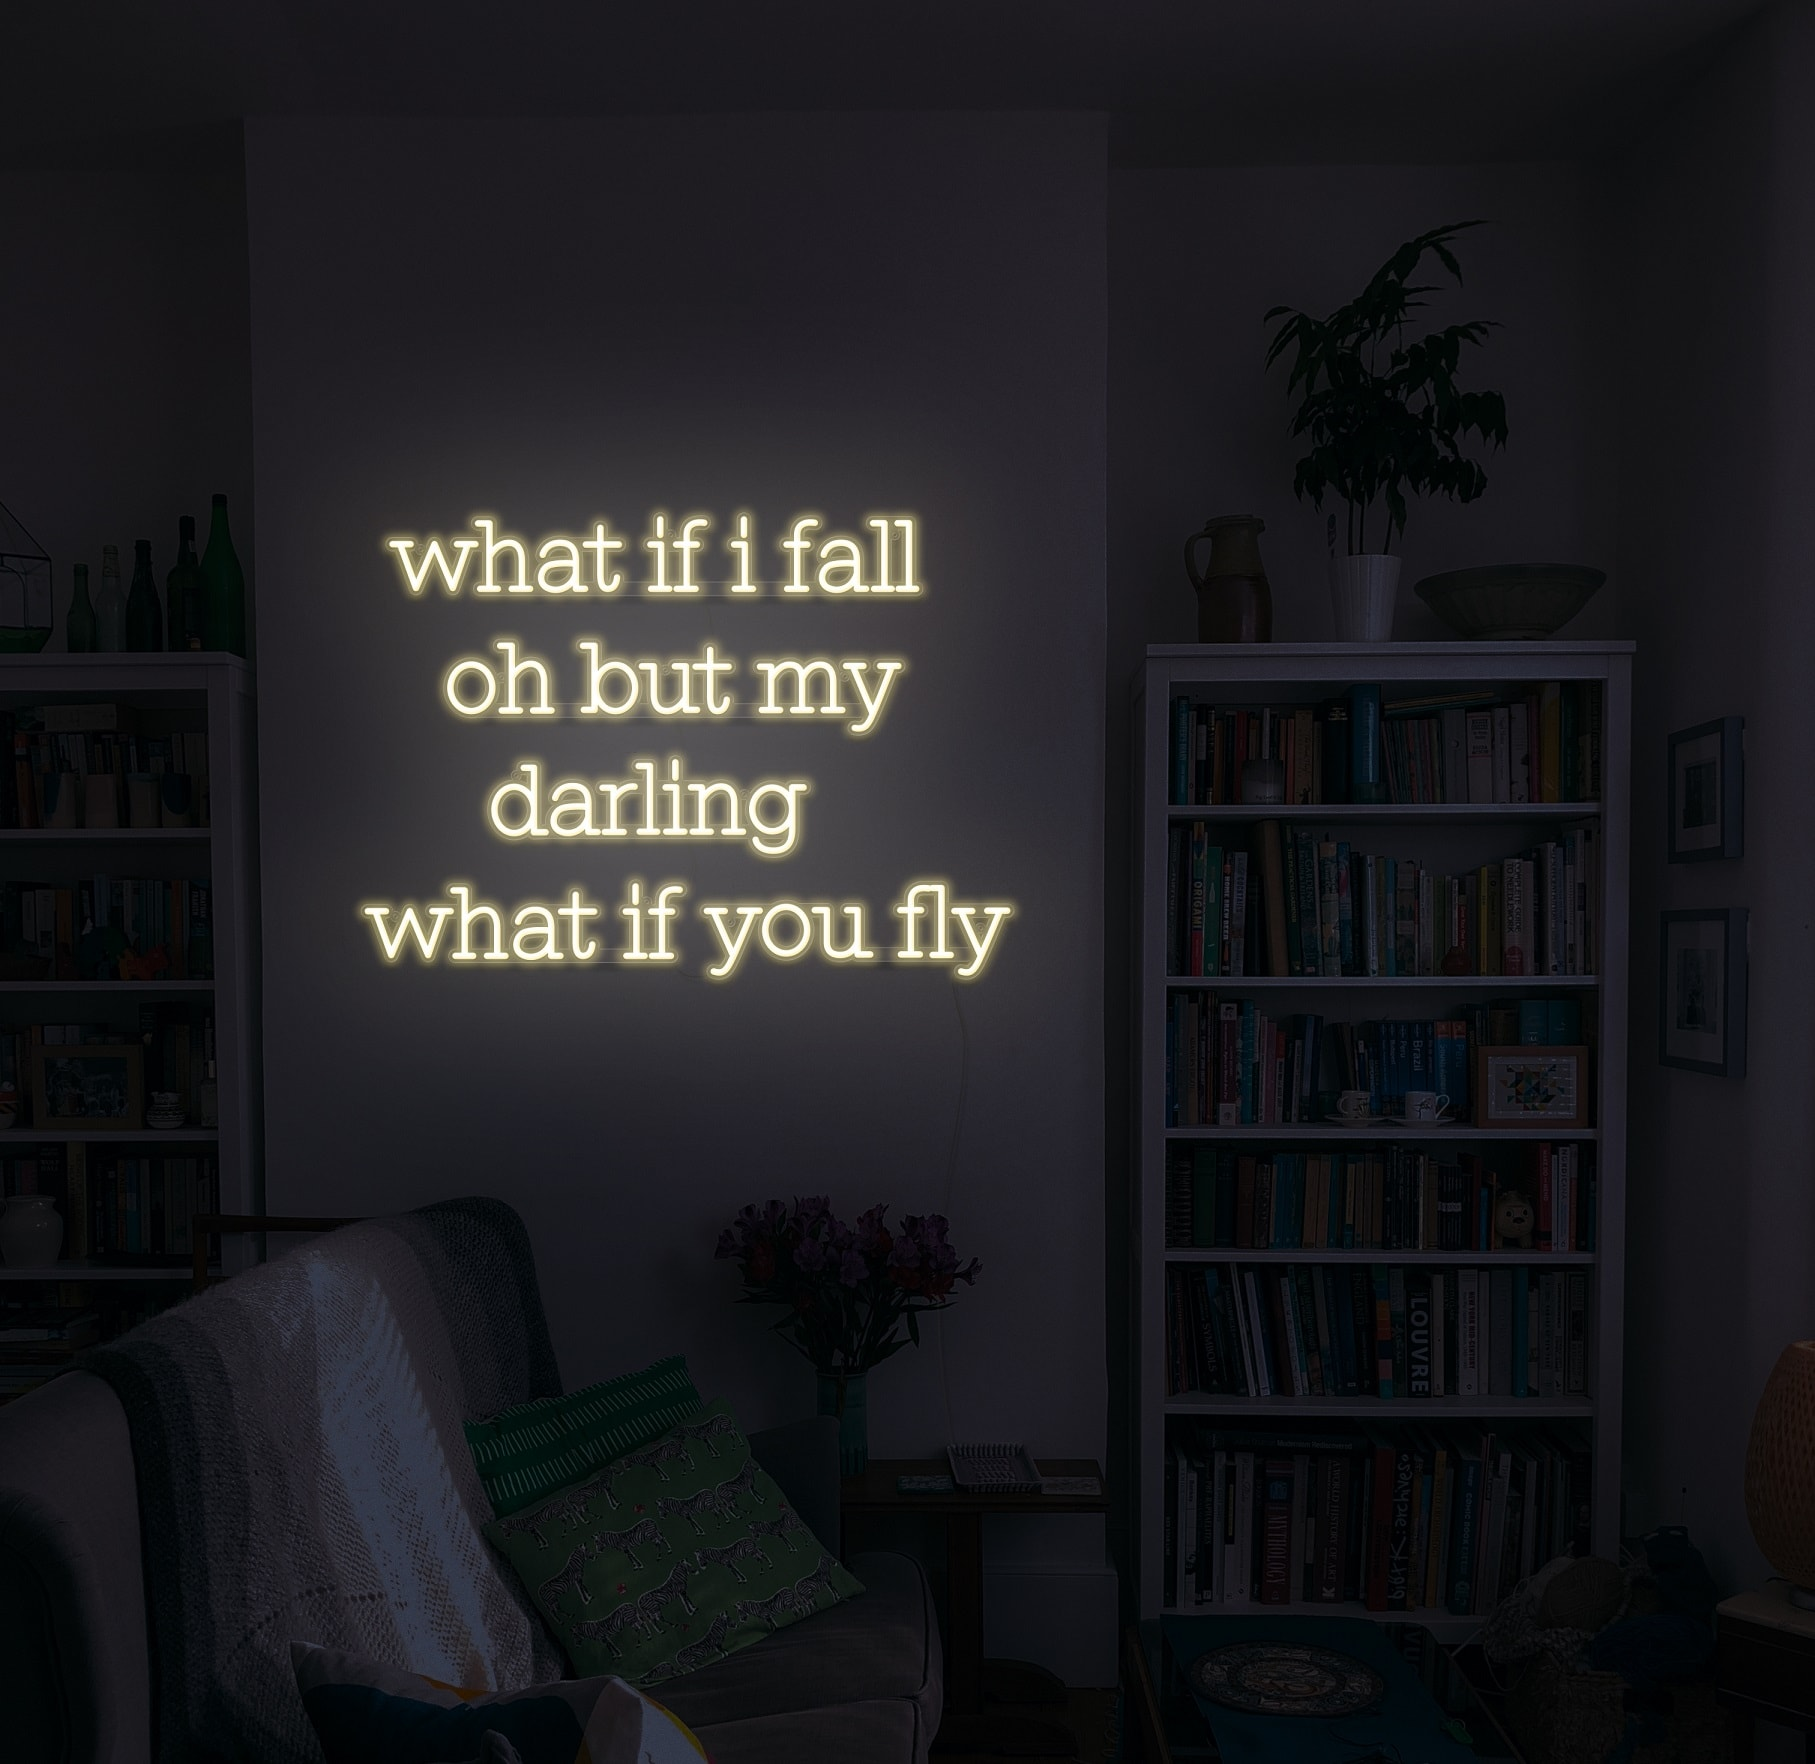 what if you fly neon light